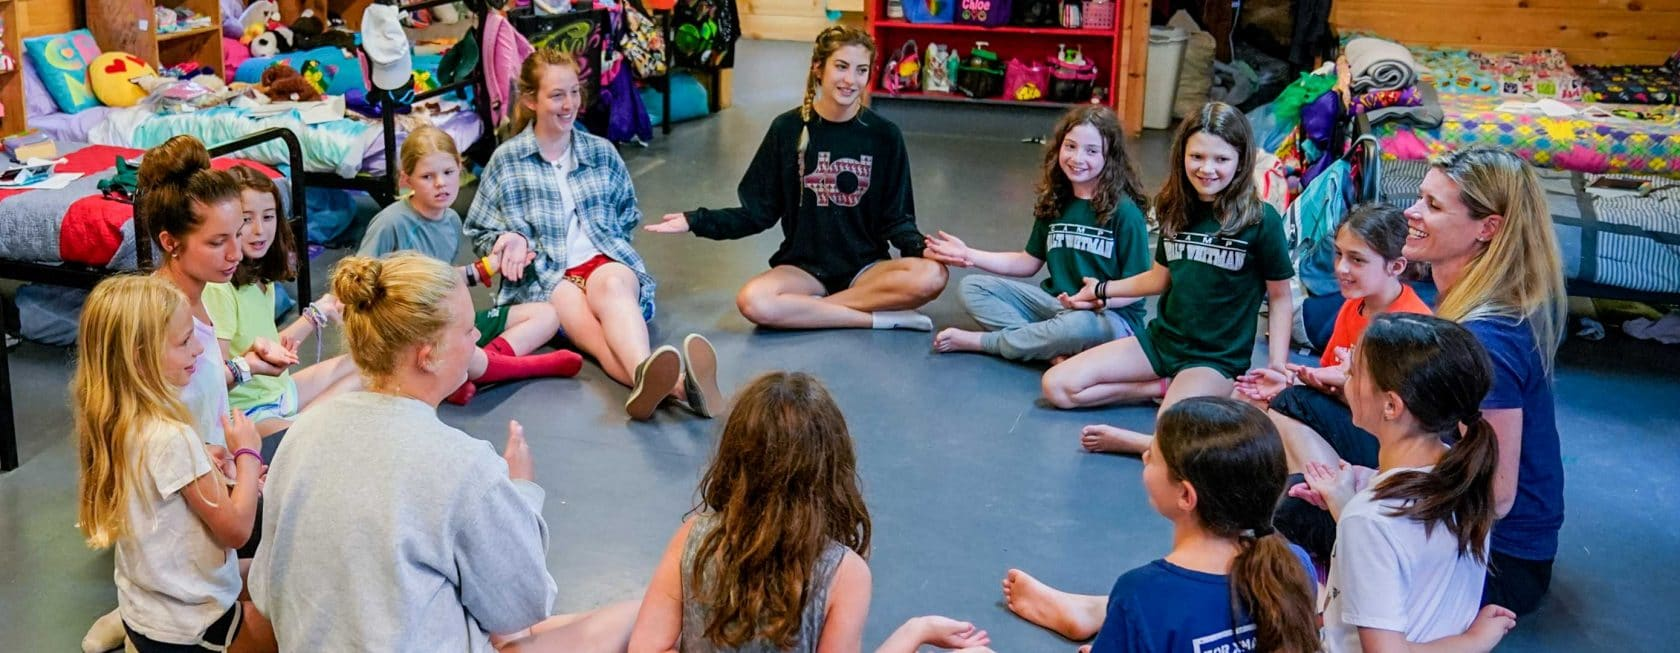 group of campers and counselors in a circling playing a game